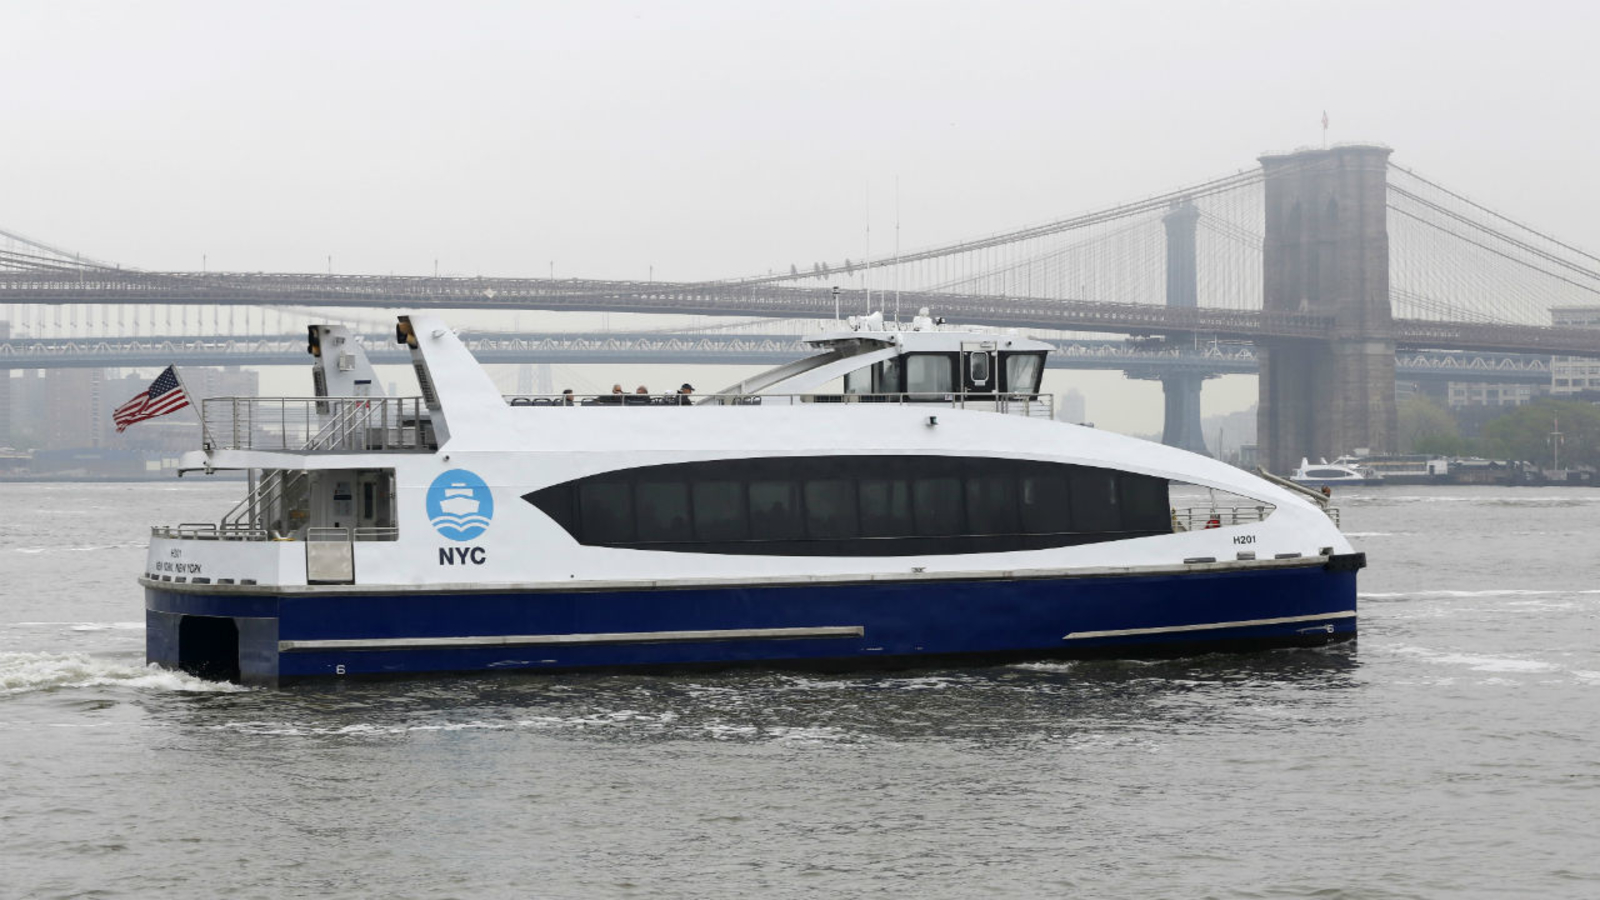 High cost of providing New York City ferry service discussed at City Council hearing